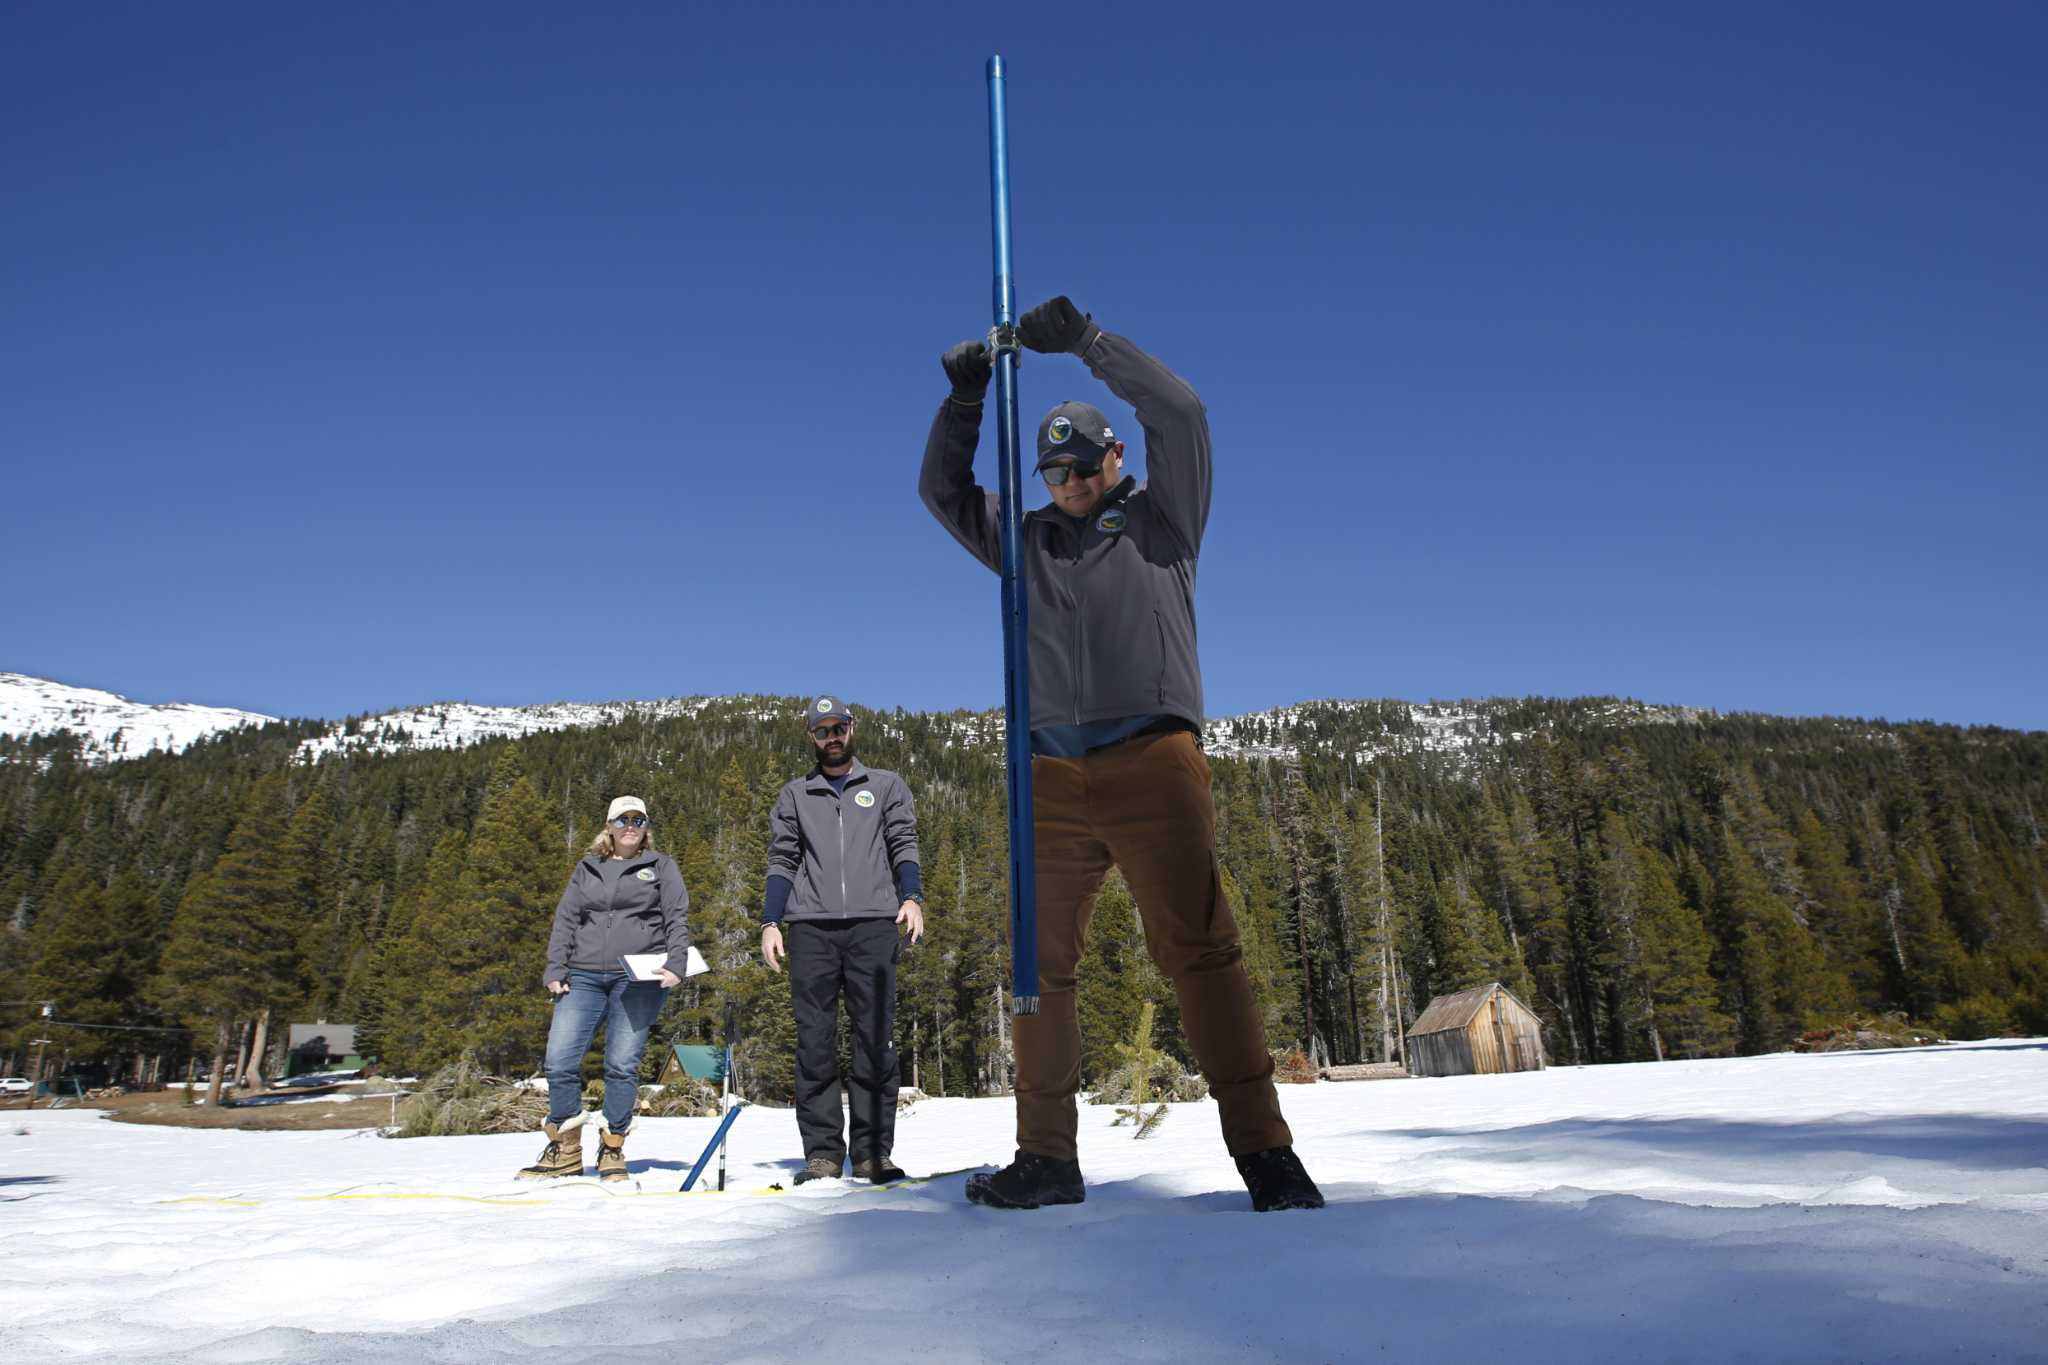 Sierra snow survey: Not time to panic, but snowpack less than half of normal